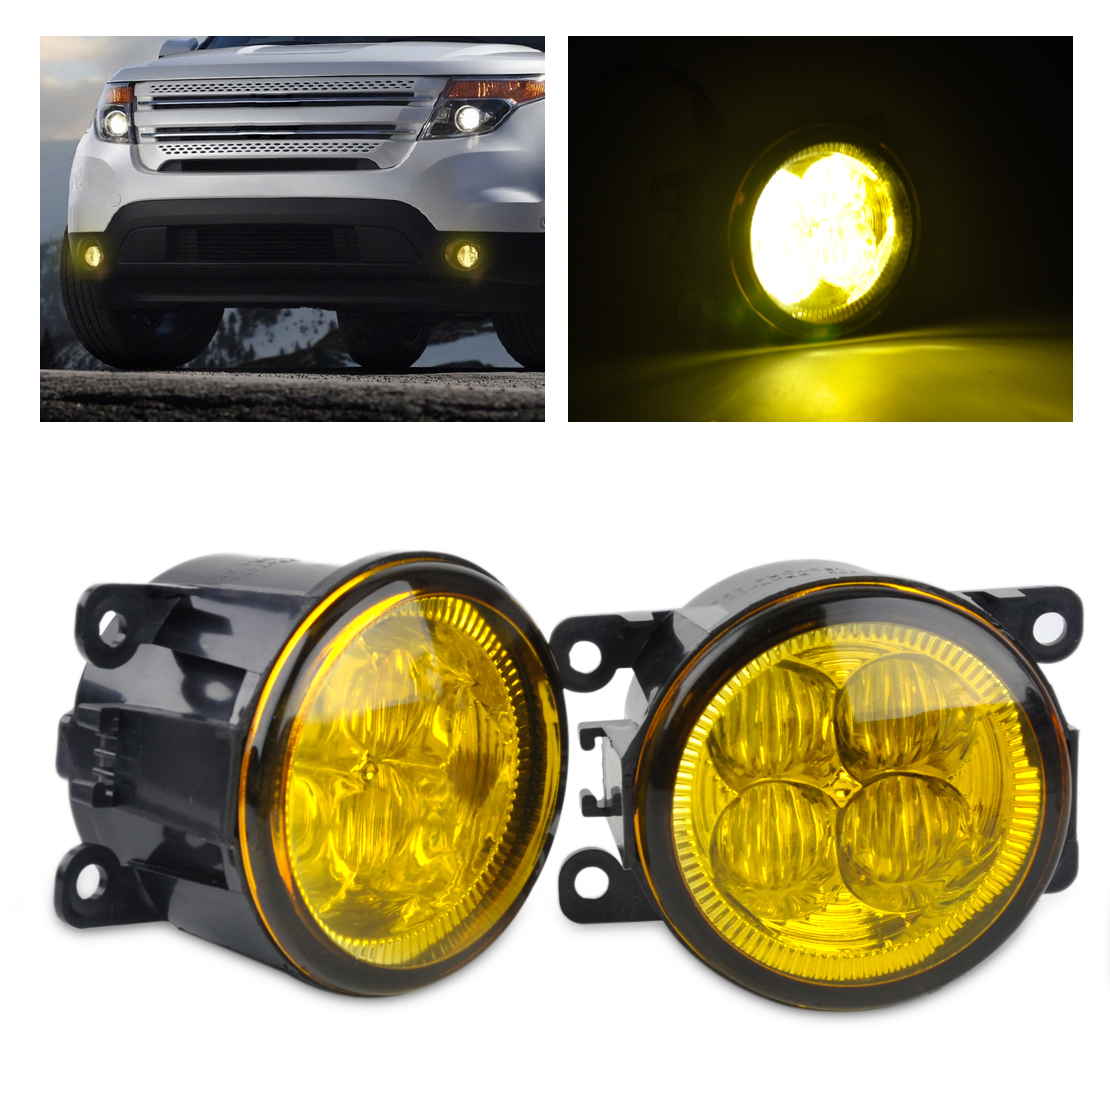 beler 2pcs Highlighted LED Fog Light Lamp with Yellow Lens AC2592111 3225-2050B for Ford Focus Acura Honda Subaru Nissan Suzuki dwcx fog light lamp female adapter wiring harness sockets wire connector for ford focus acura nissan honda cr v infiniti subaru